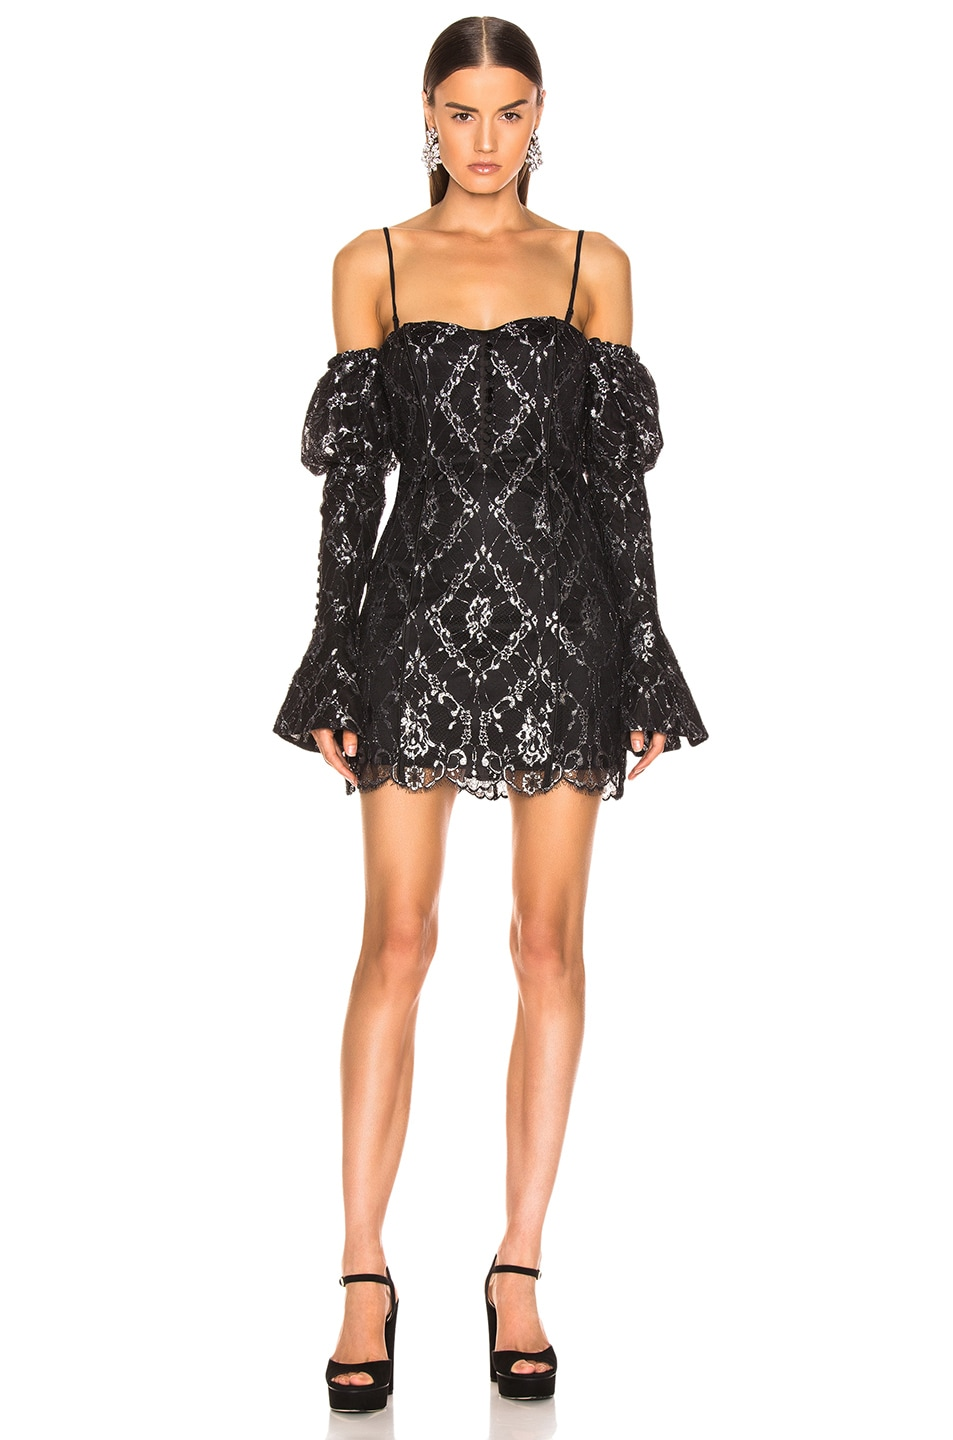 Image 2 of JONATHAN SIMKHAI for FWRD Off the Shoulder Metallic Lace Dress in Black